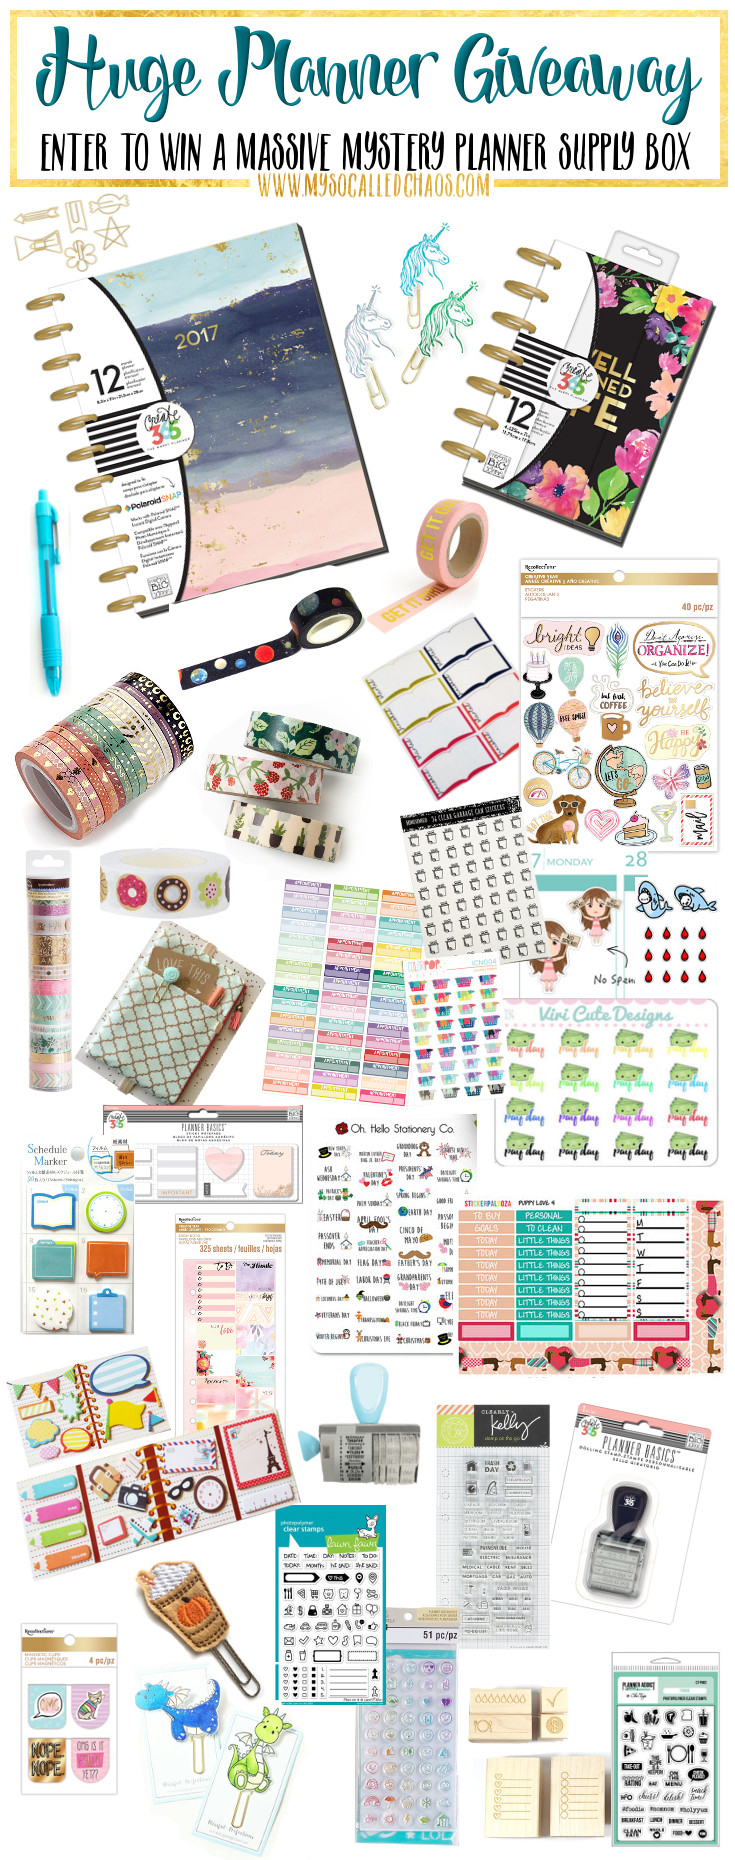 Enter our HUGE planner giveaway for a chance to win a planner box filled with goodies!